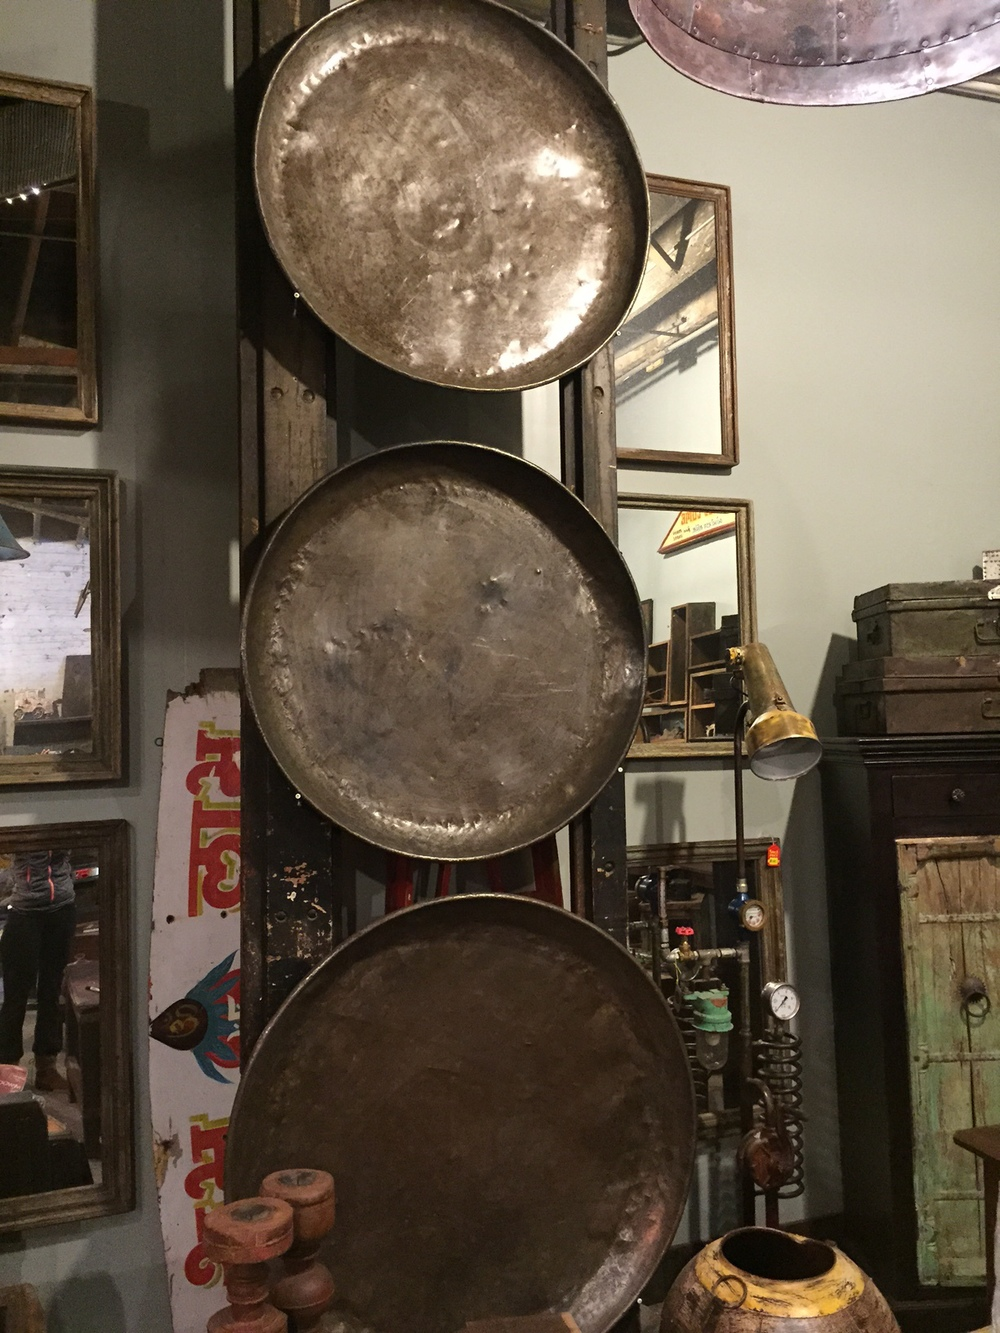 Vintage Cooking Pans from India